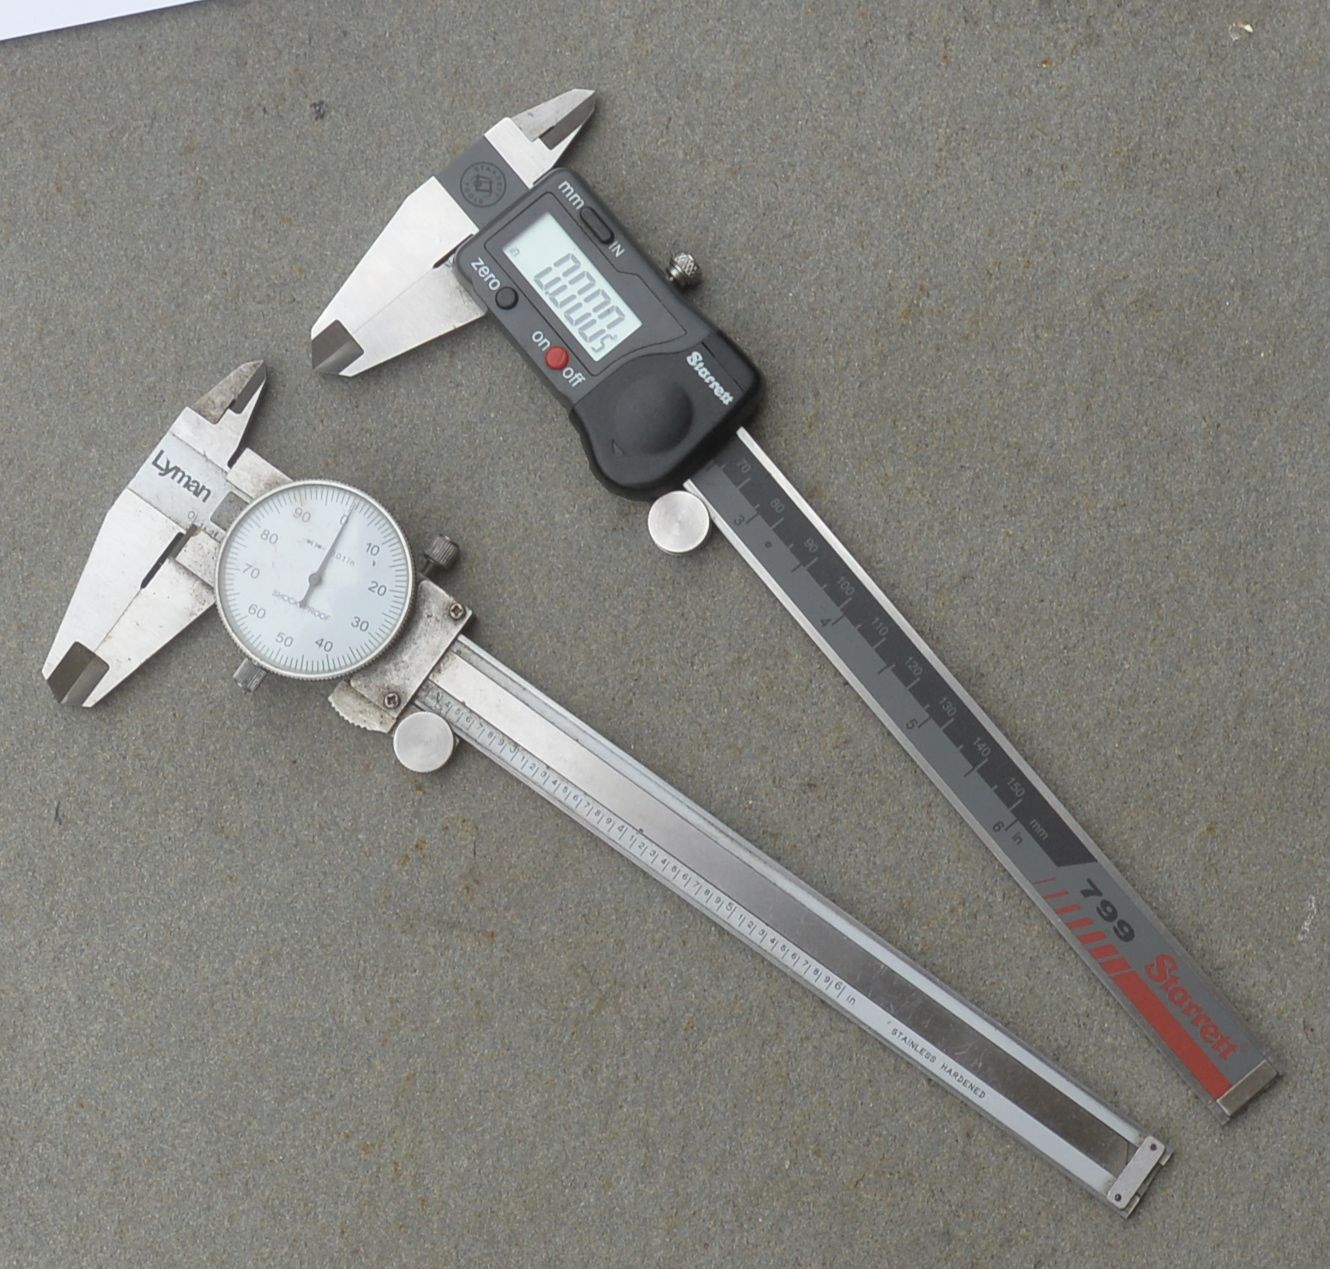 measuring group size calipers